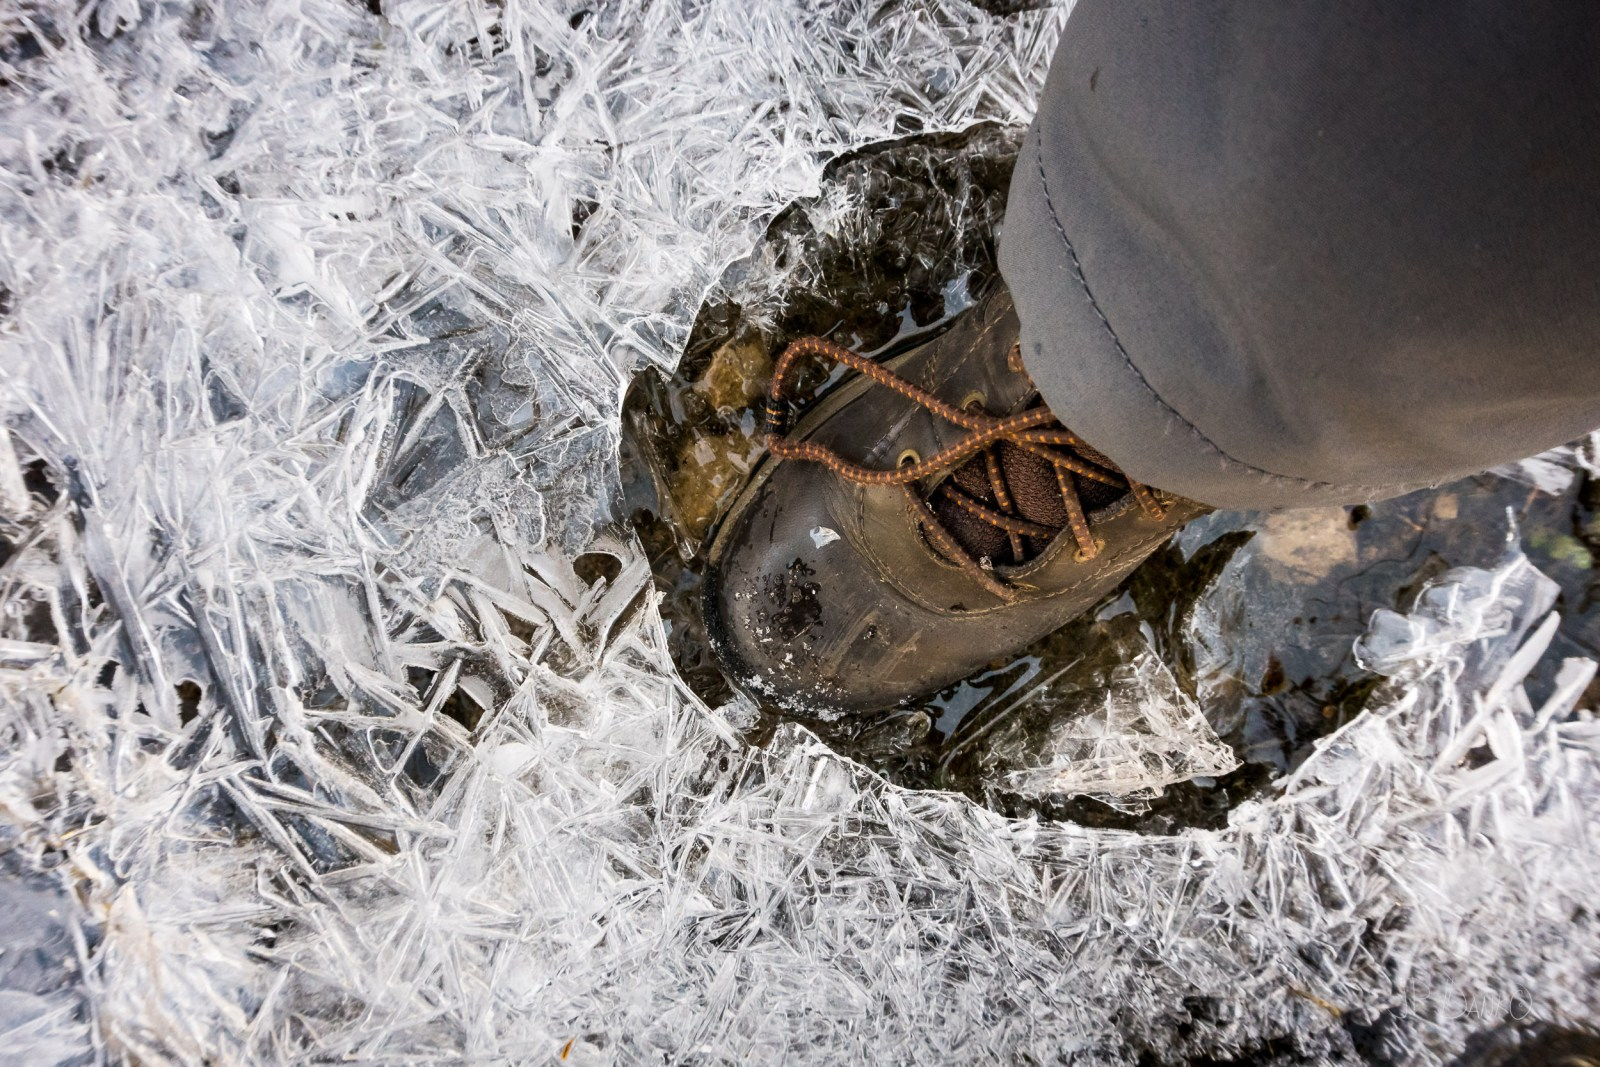 Boot breaks through thin layer of ice as planet warms